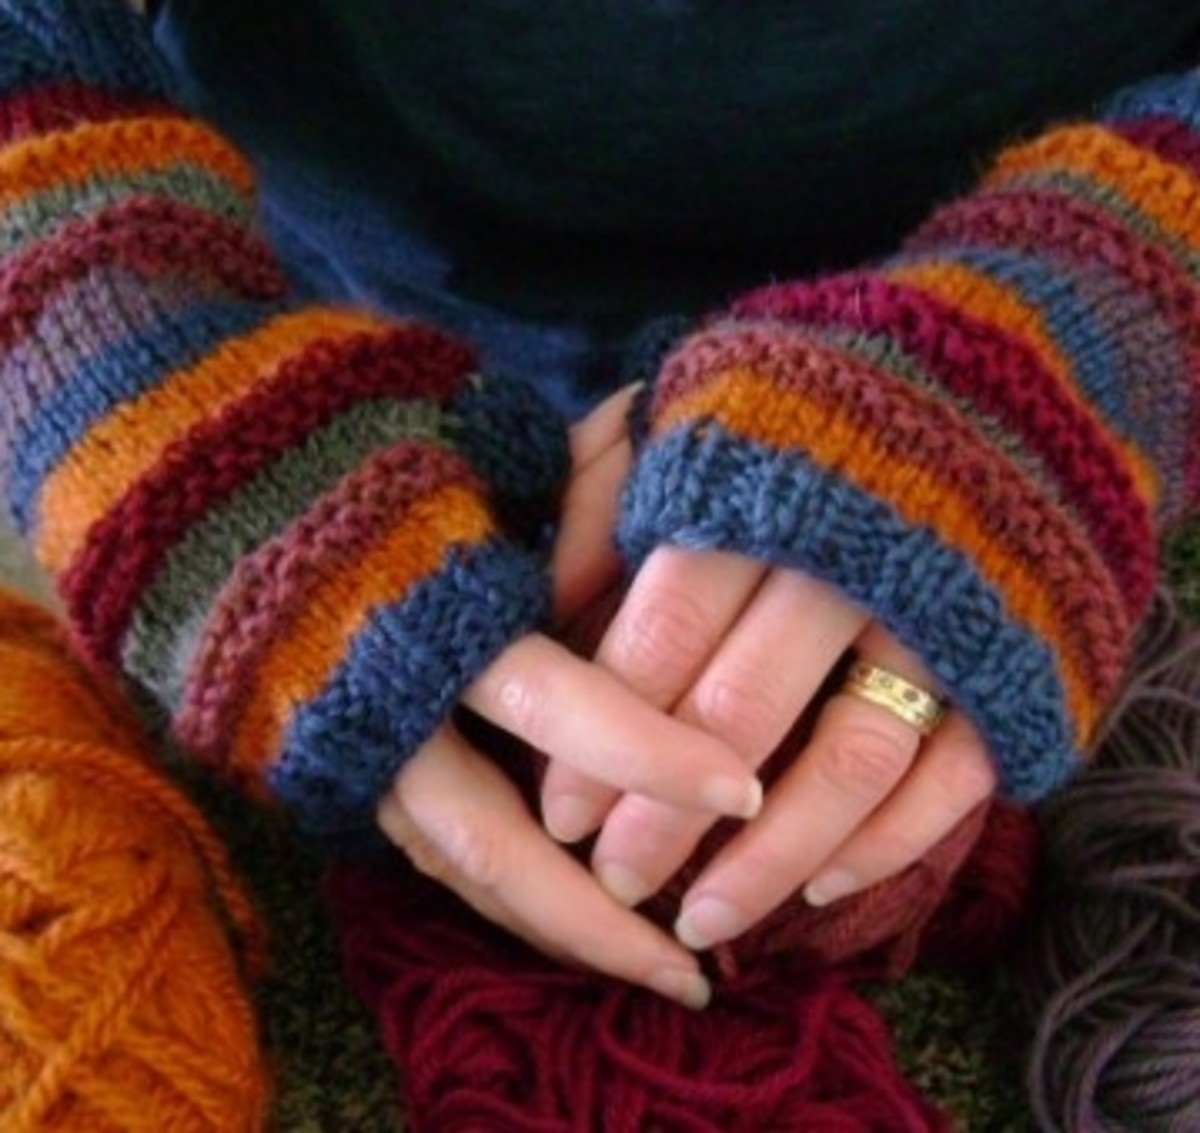 Knitting Pattern for the Stash-o-motastic Fingerless Mitts